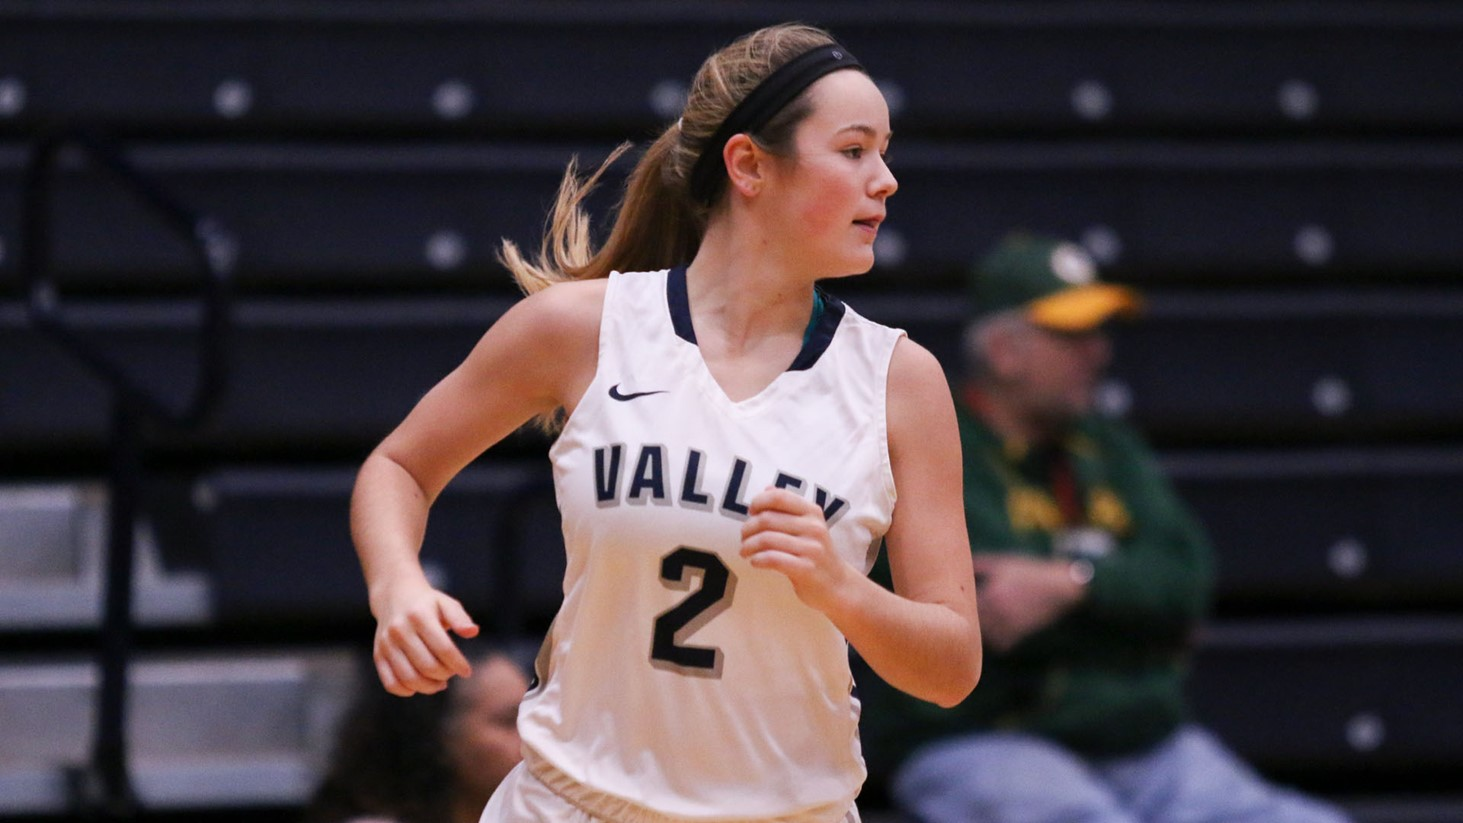 The official athletic website of lebanon valley college fandeluxe Image collections